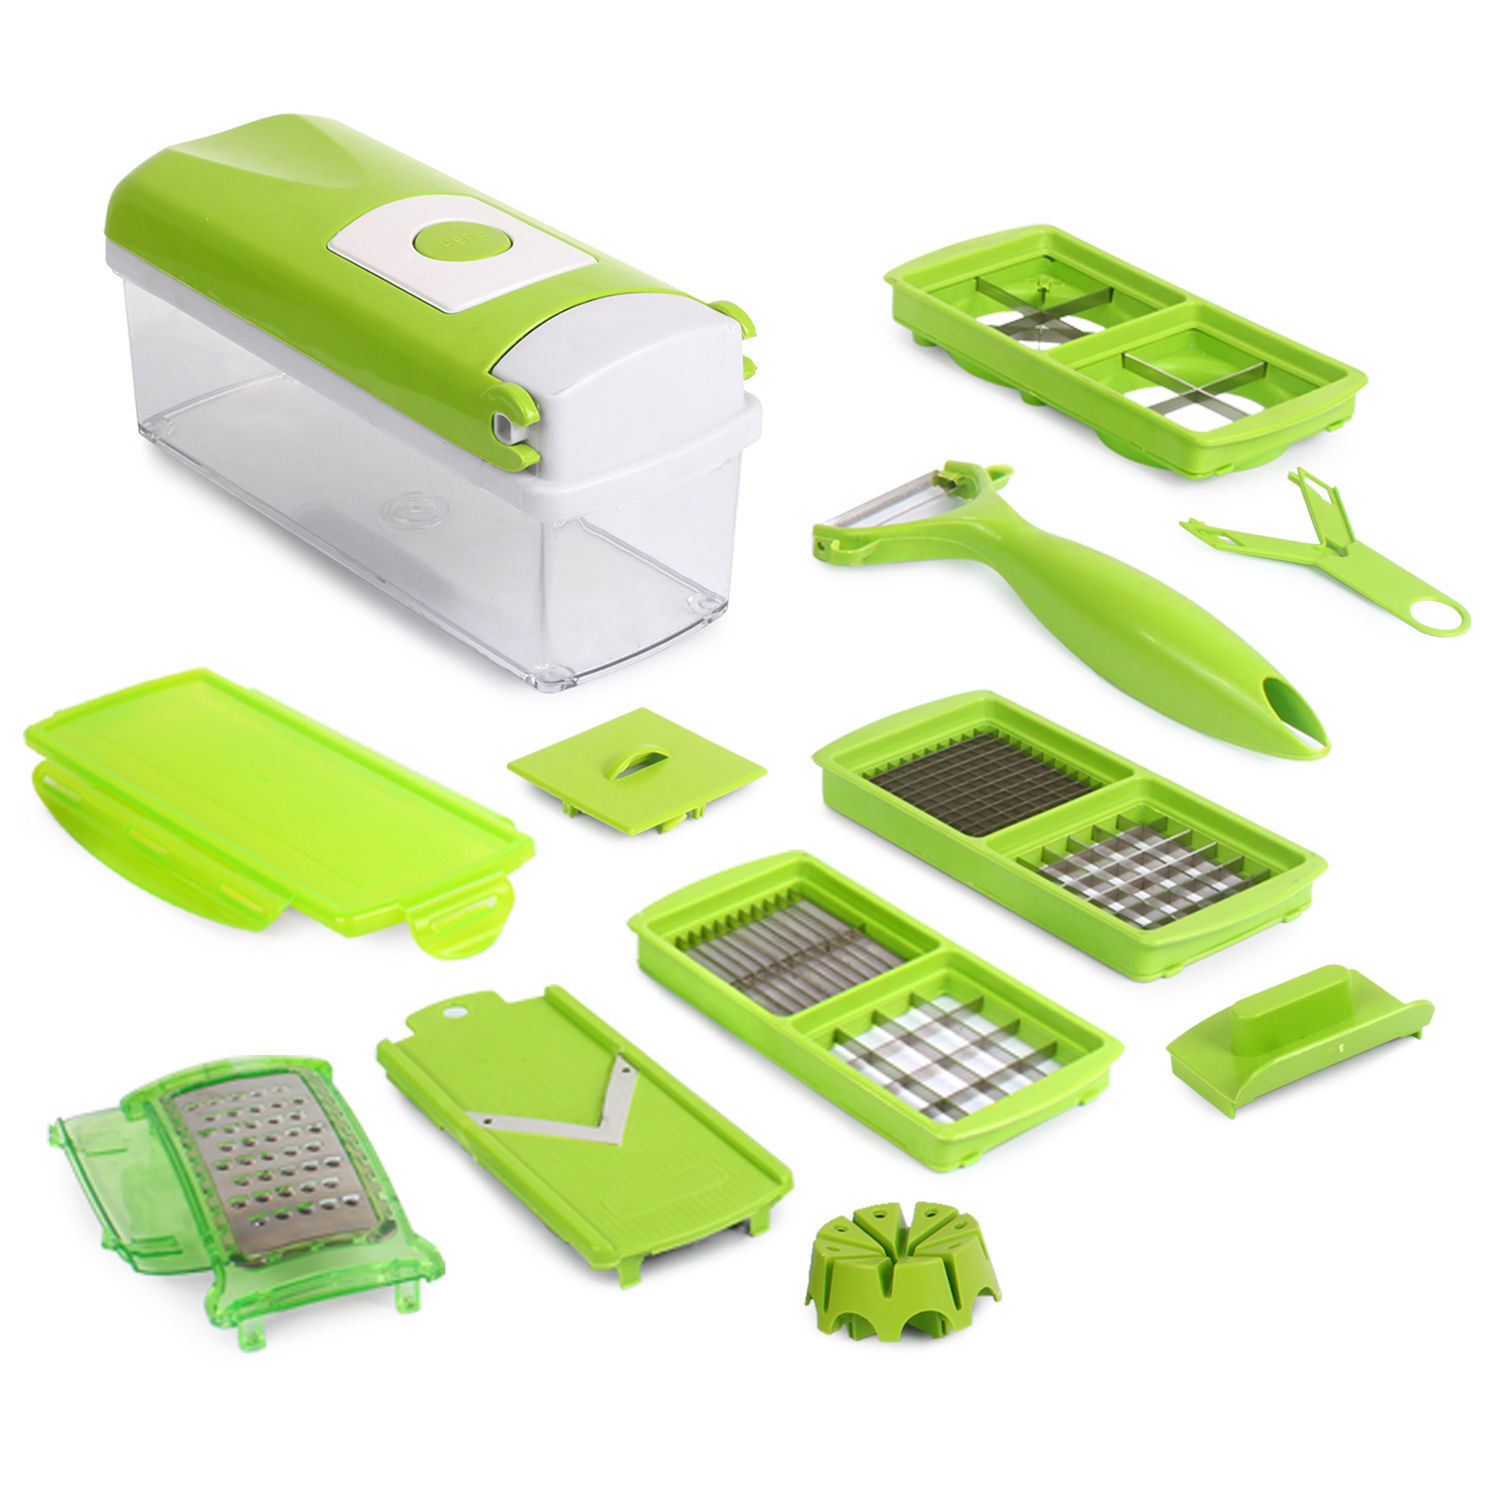 12 PC Super Slicer Plus Vegetable Fruit Peeler Dicer Cutter Chopper Nicer Grater by